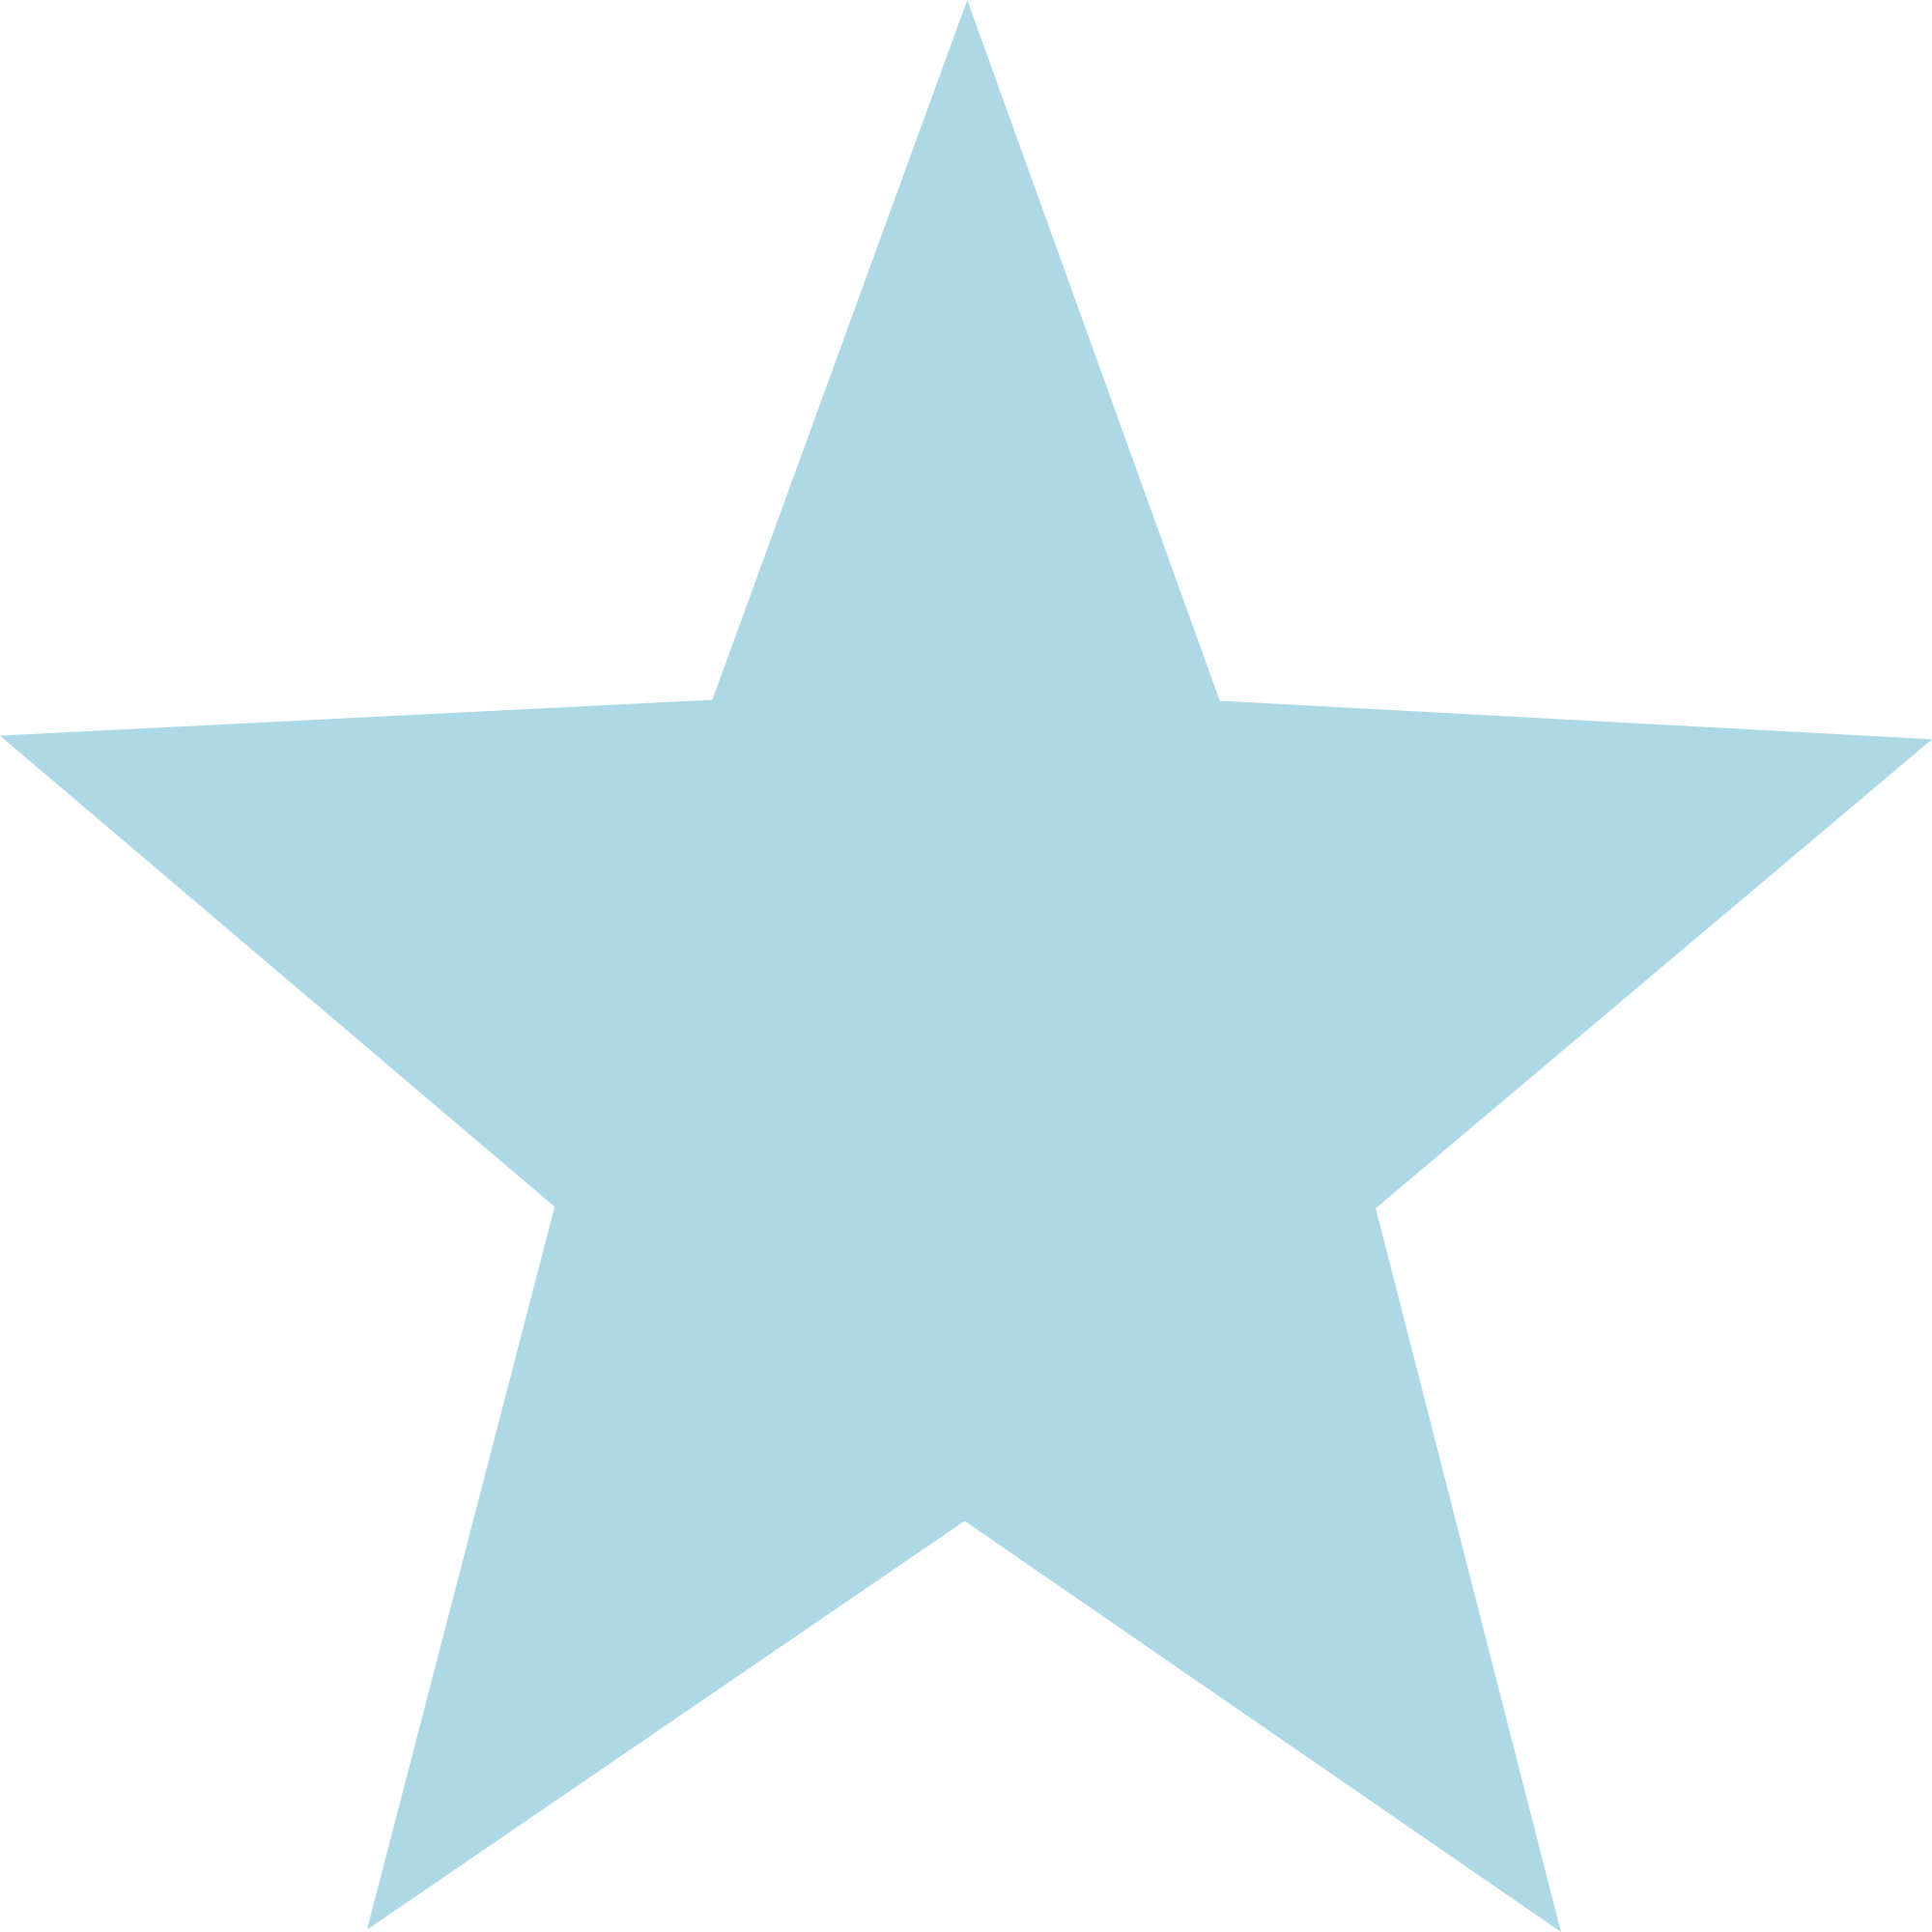 Red white and blue star clipart banner freeuse 28+ Collection of Light Blue Star Clipart | High quality, free ... banner freeuse